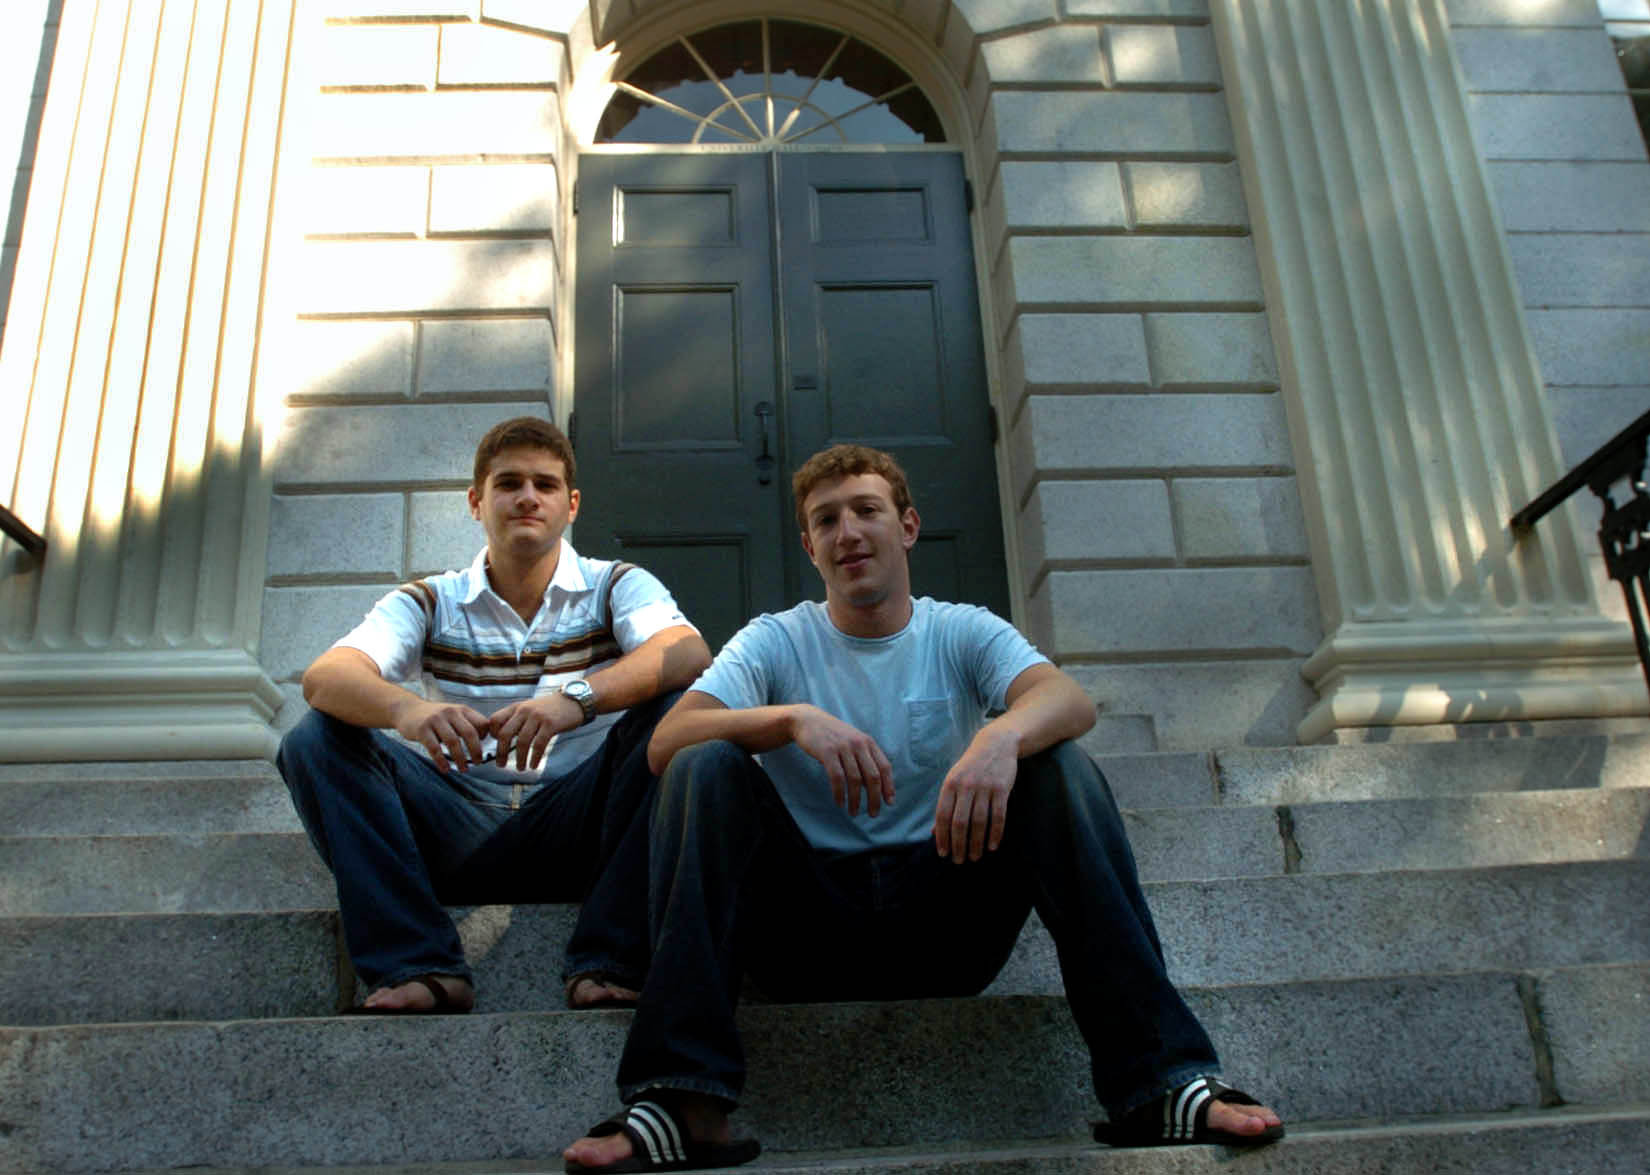 Facebook co-founders Dustin Moskovitz and Mark Zuckerberg. Section 230 made it possible for a handful of college kids to build Facebook.